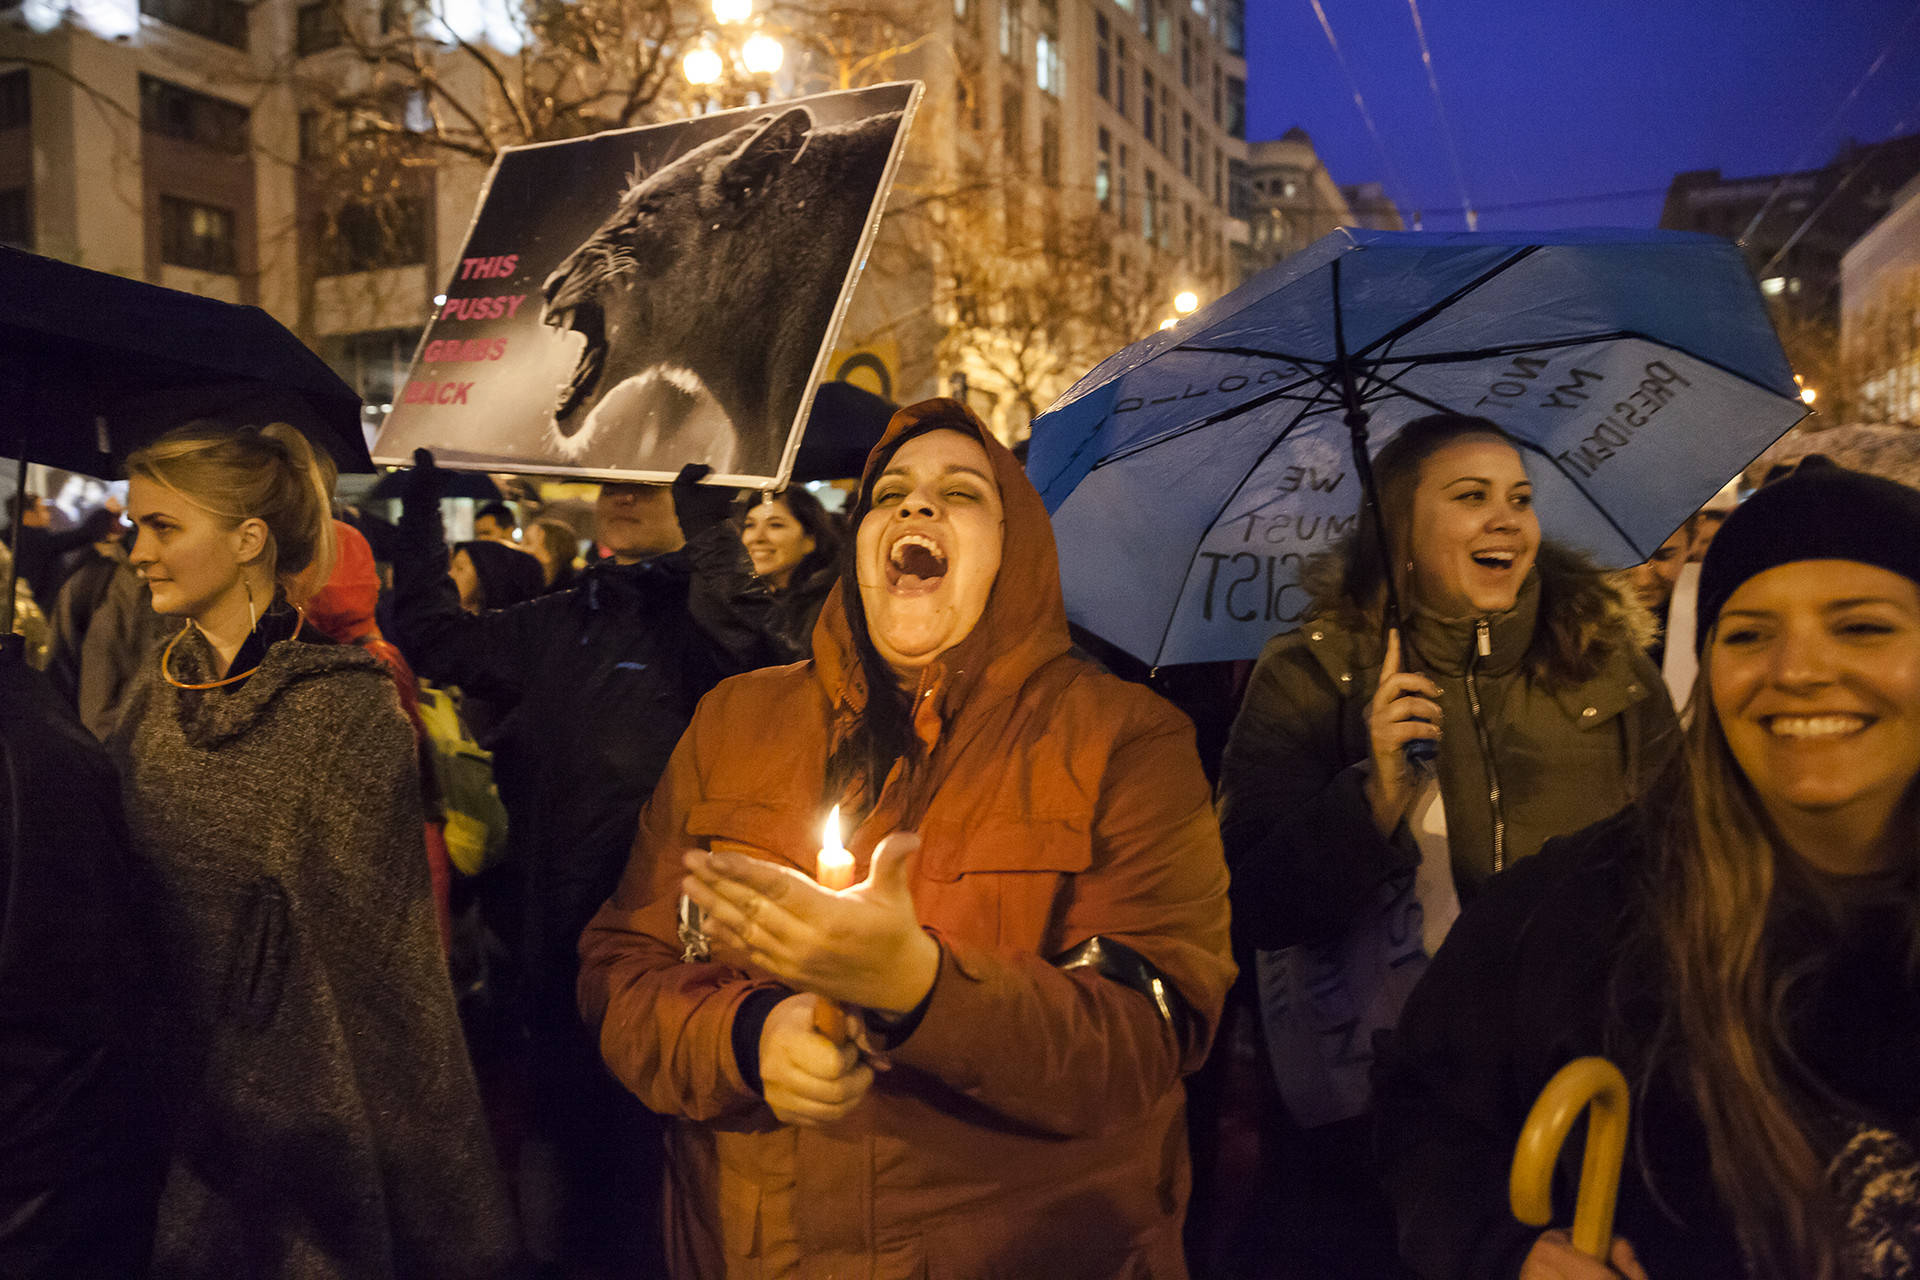 """Nicole Barnes (center) chants with other protesters as she carries a candle during the Women's March in San Francisco on Jan. 21, 2017. """"We are not invisible, and nobody is going to speak for us,"""" Barnes says. """"We have a voice. We've had it the whole time."""" Brittany Hosea-Small/KQED"""